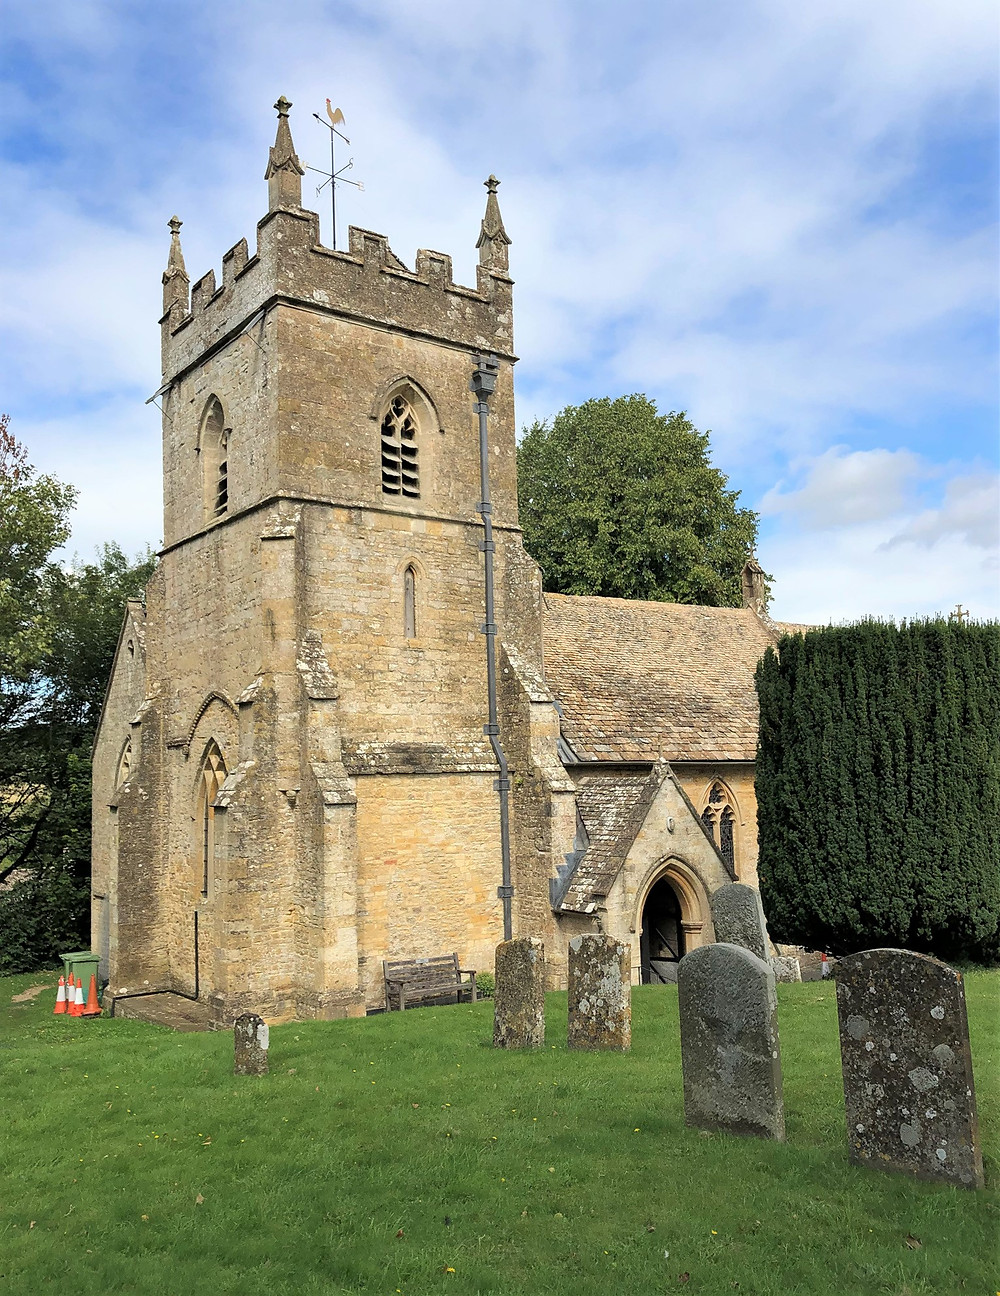 Church of St Peter's in Upper Slaughter of the Cotswolds